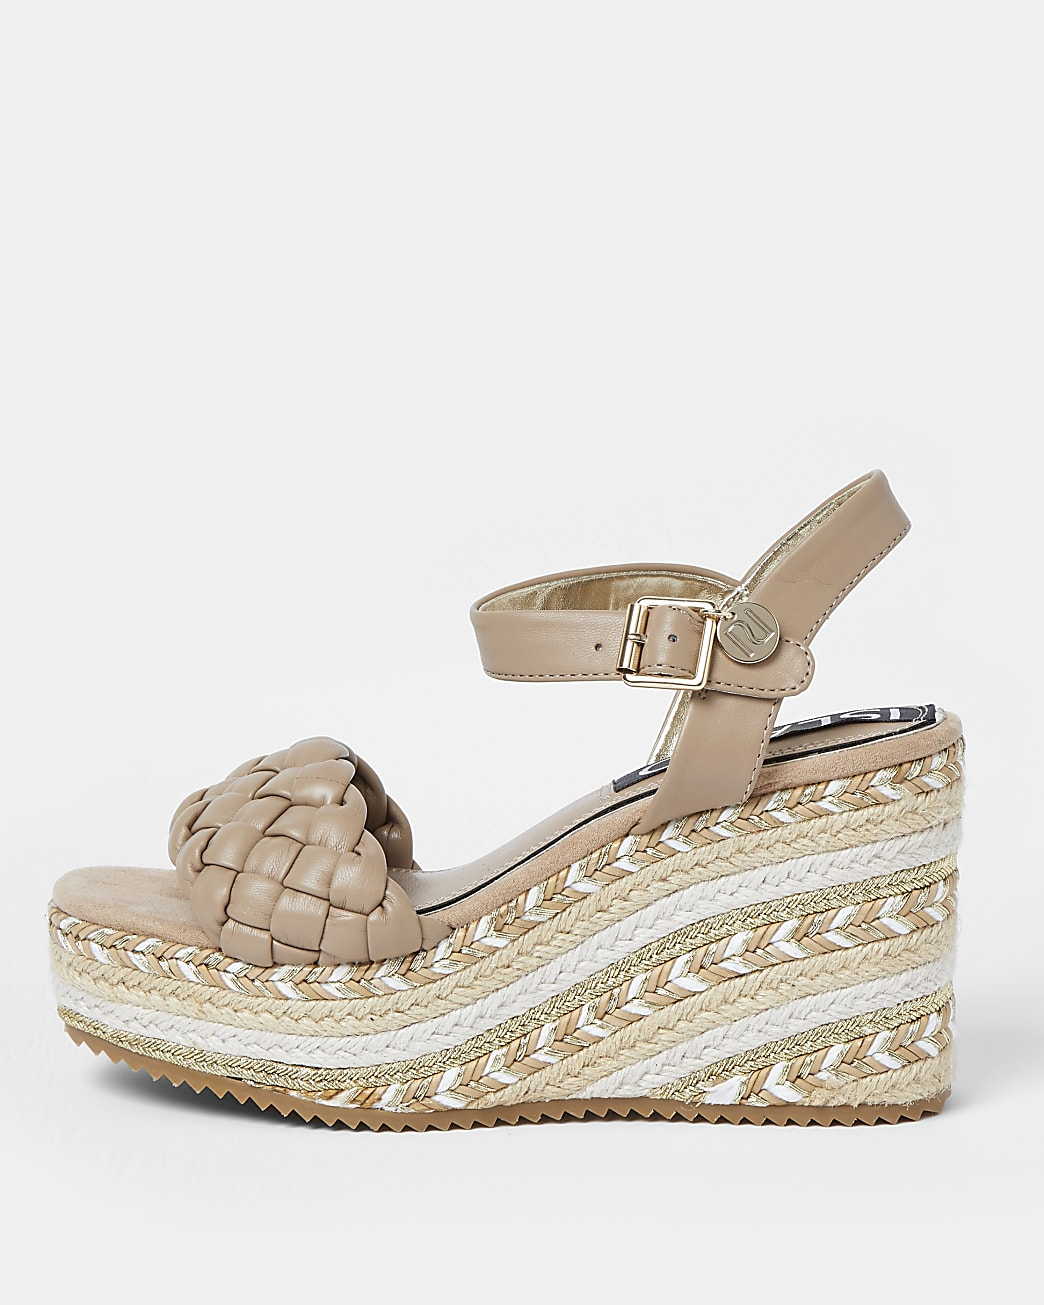 Beige weave faux leather wedge shoes